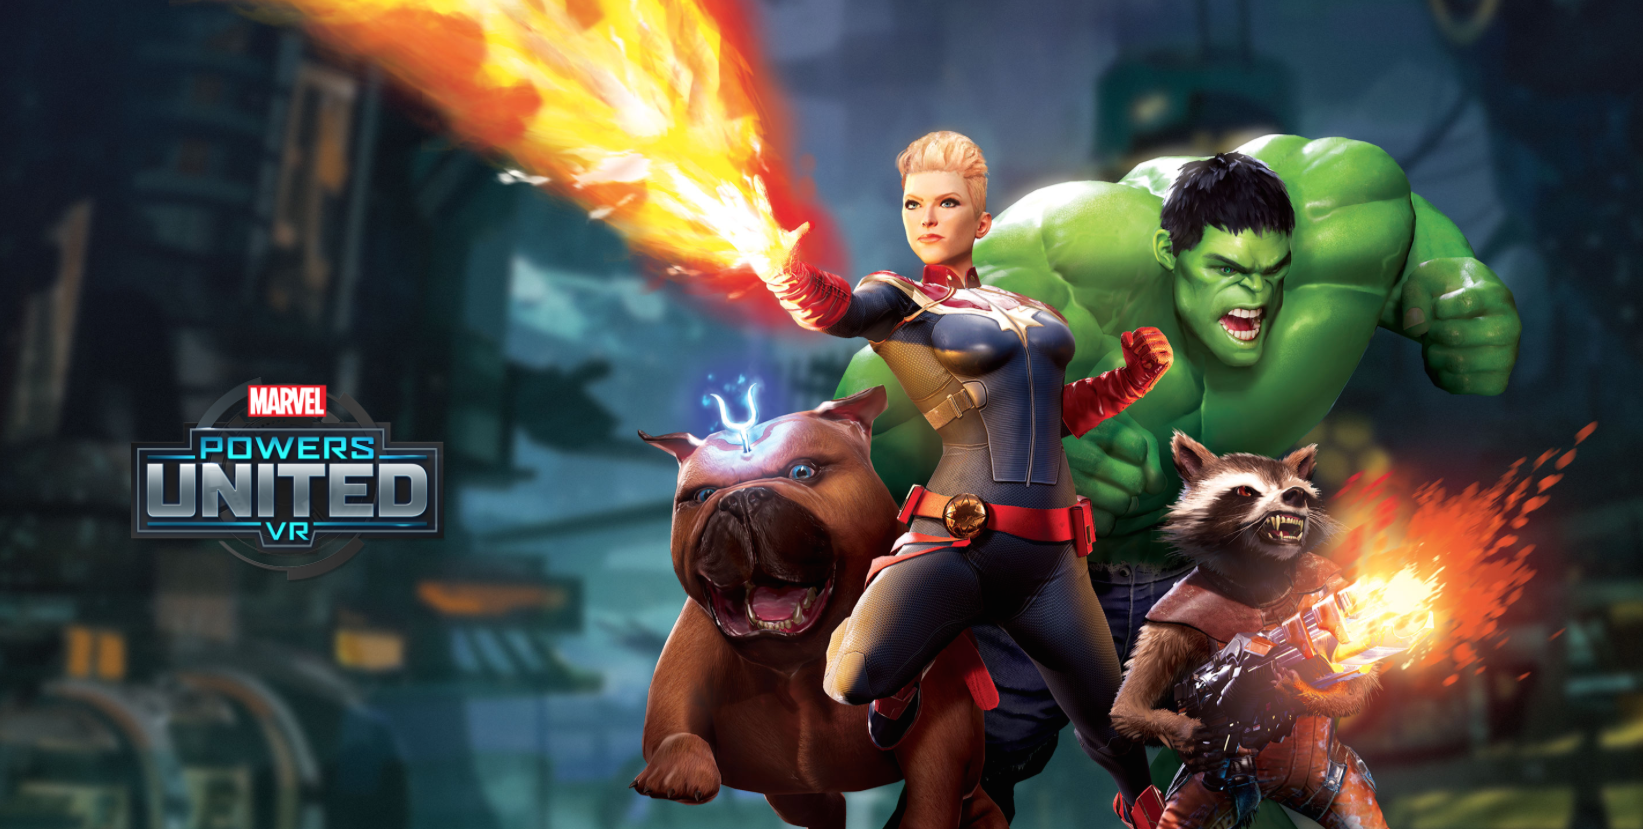 Become A Super Hero With Marvel Powers United VR